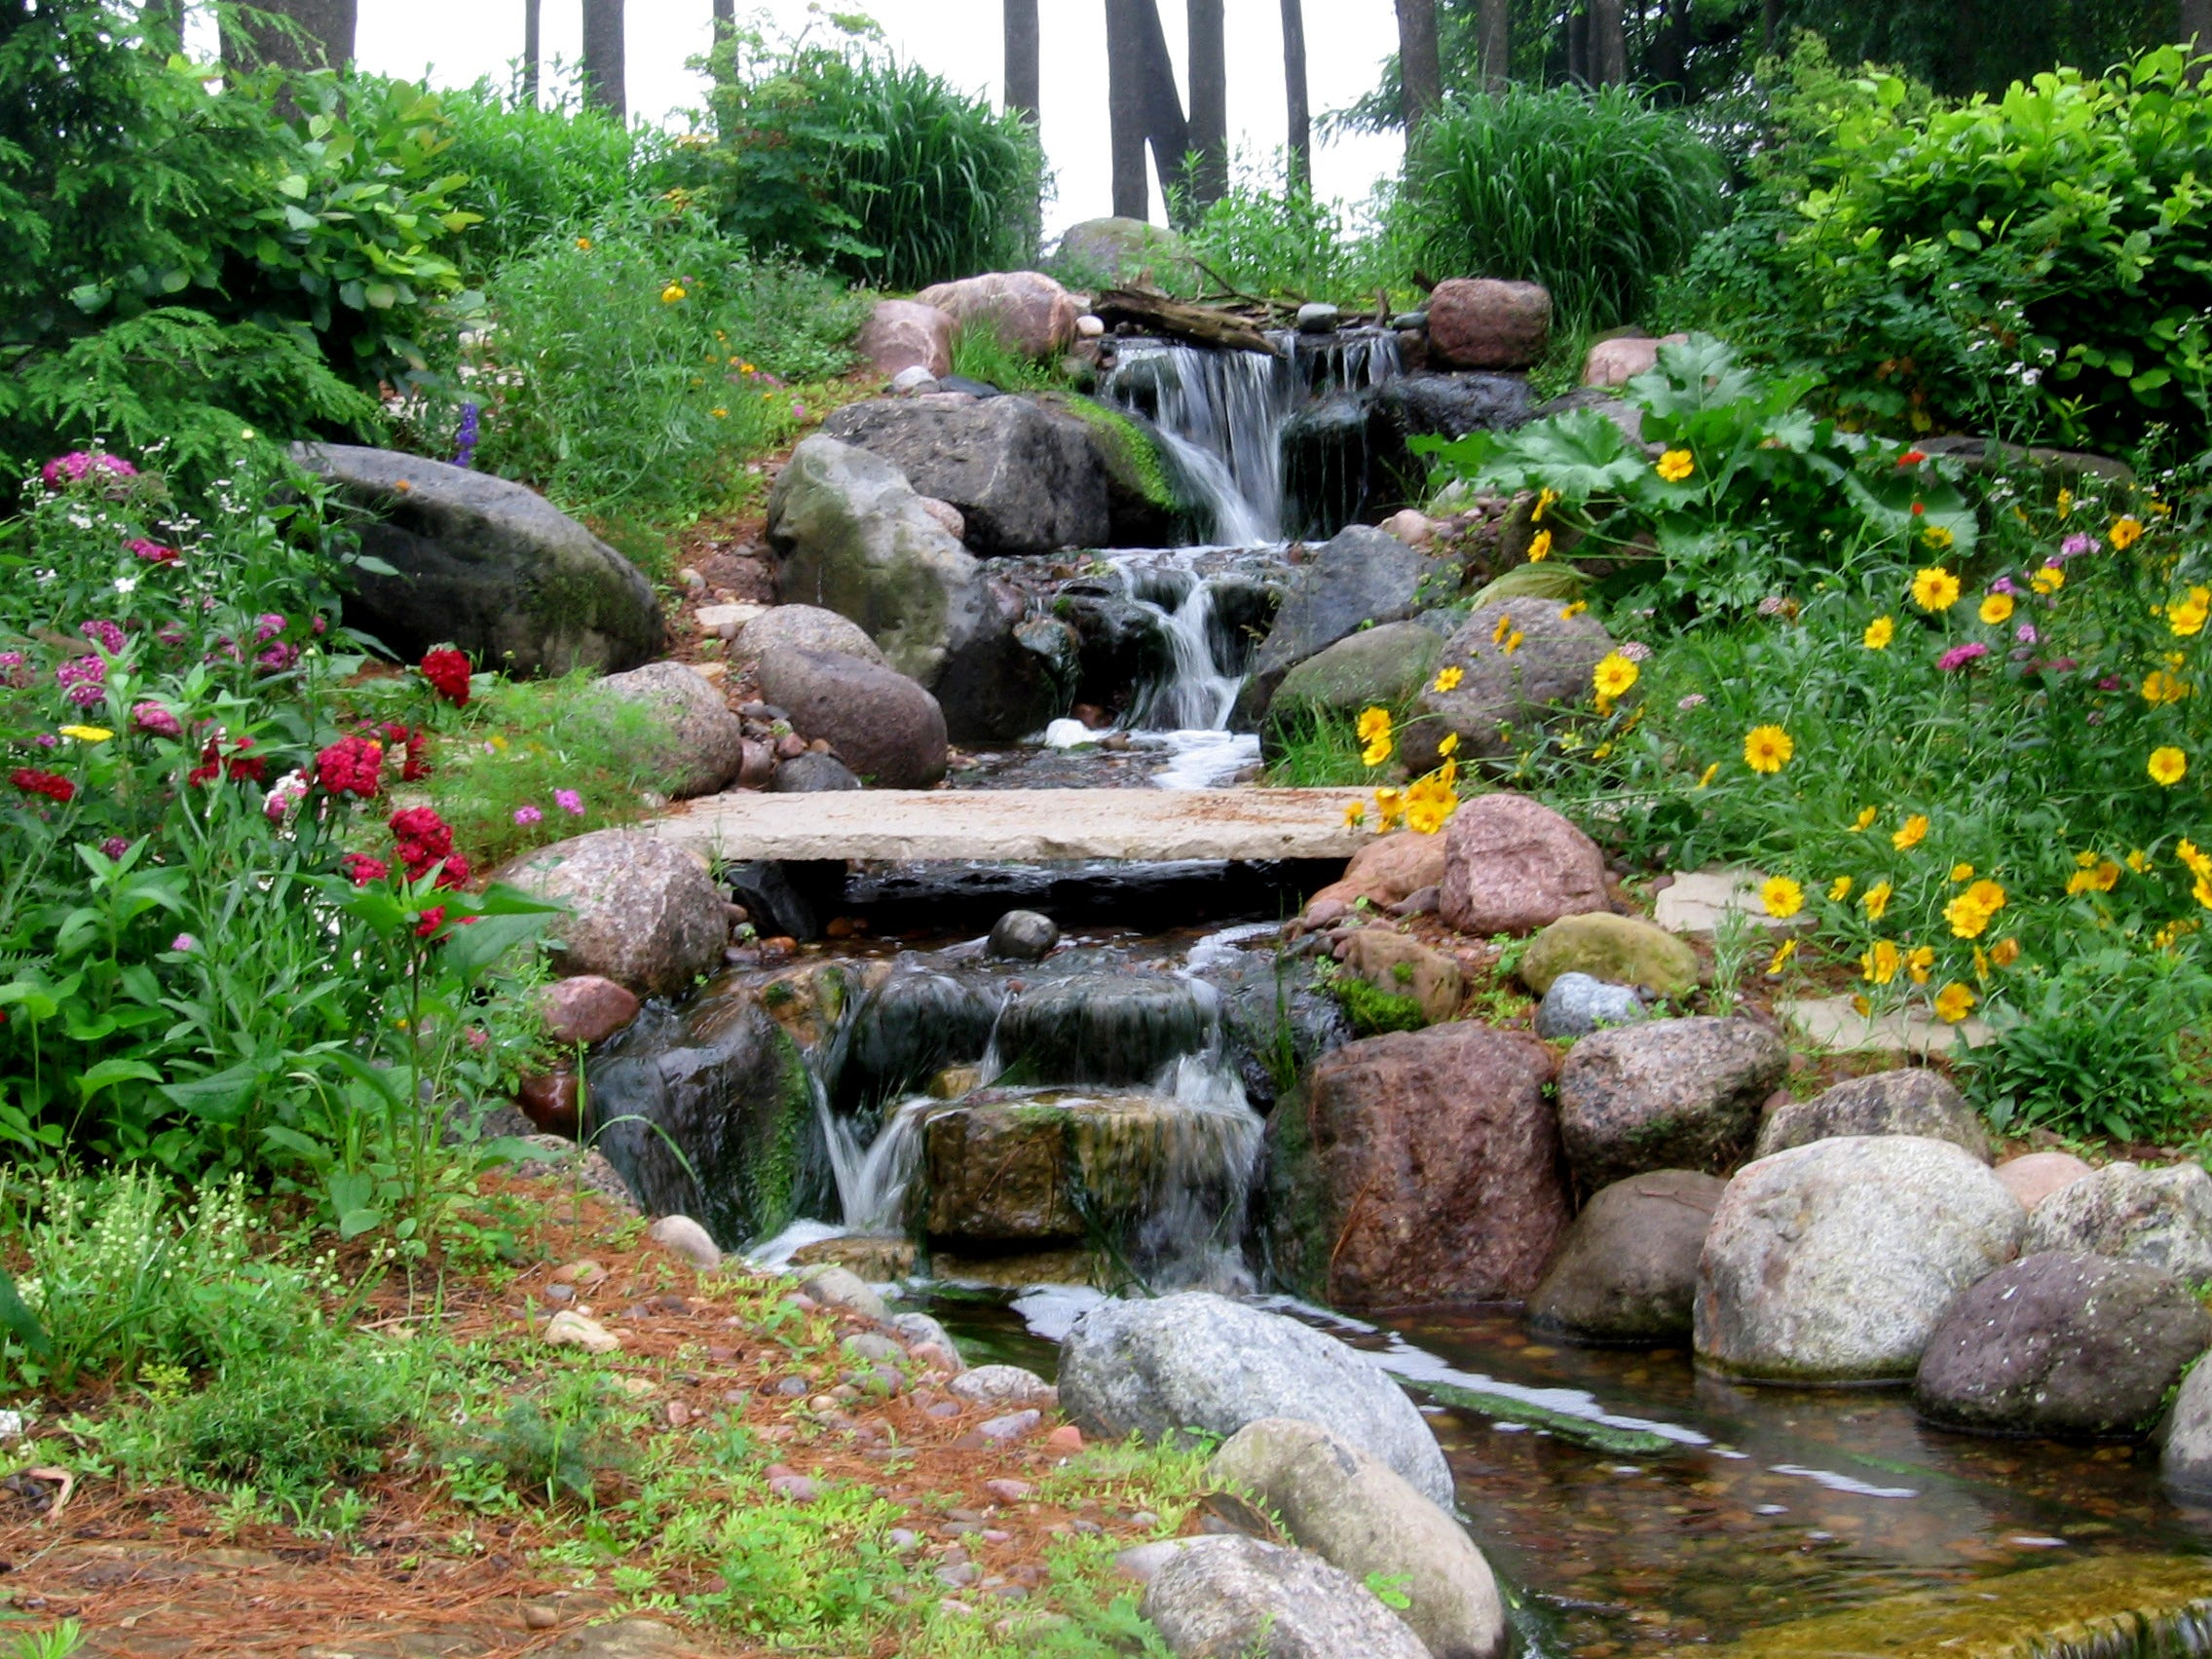 This stream and waterfalls flow down about 45 feet into a 15-by-25-foot pond that is home to dozens of koi. The waterfalls are built out of granite boulders and are about 3 feet wide and include a stone bridge over the stream.